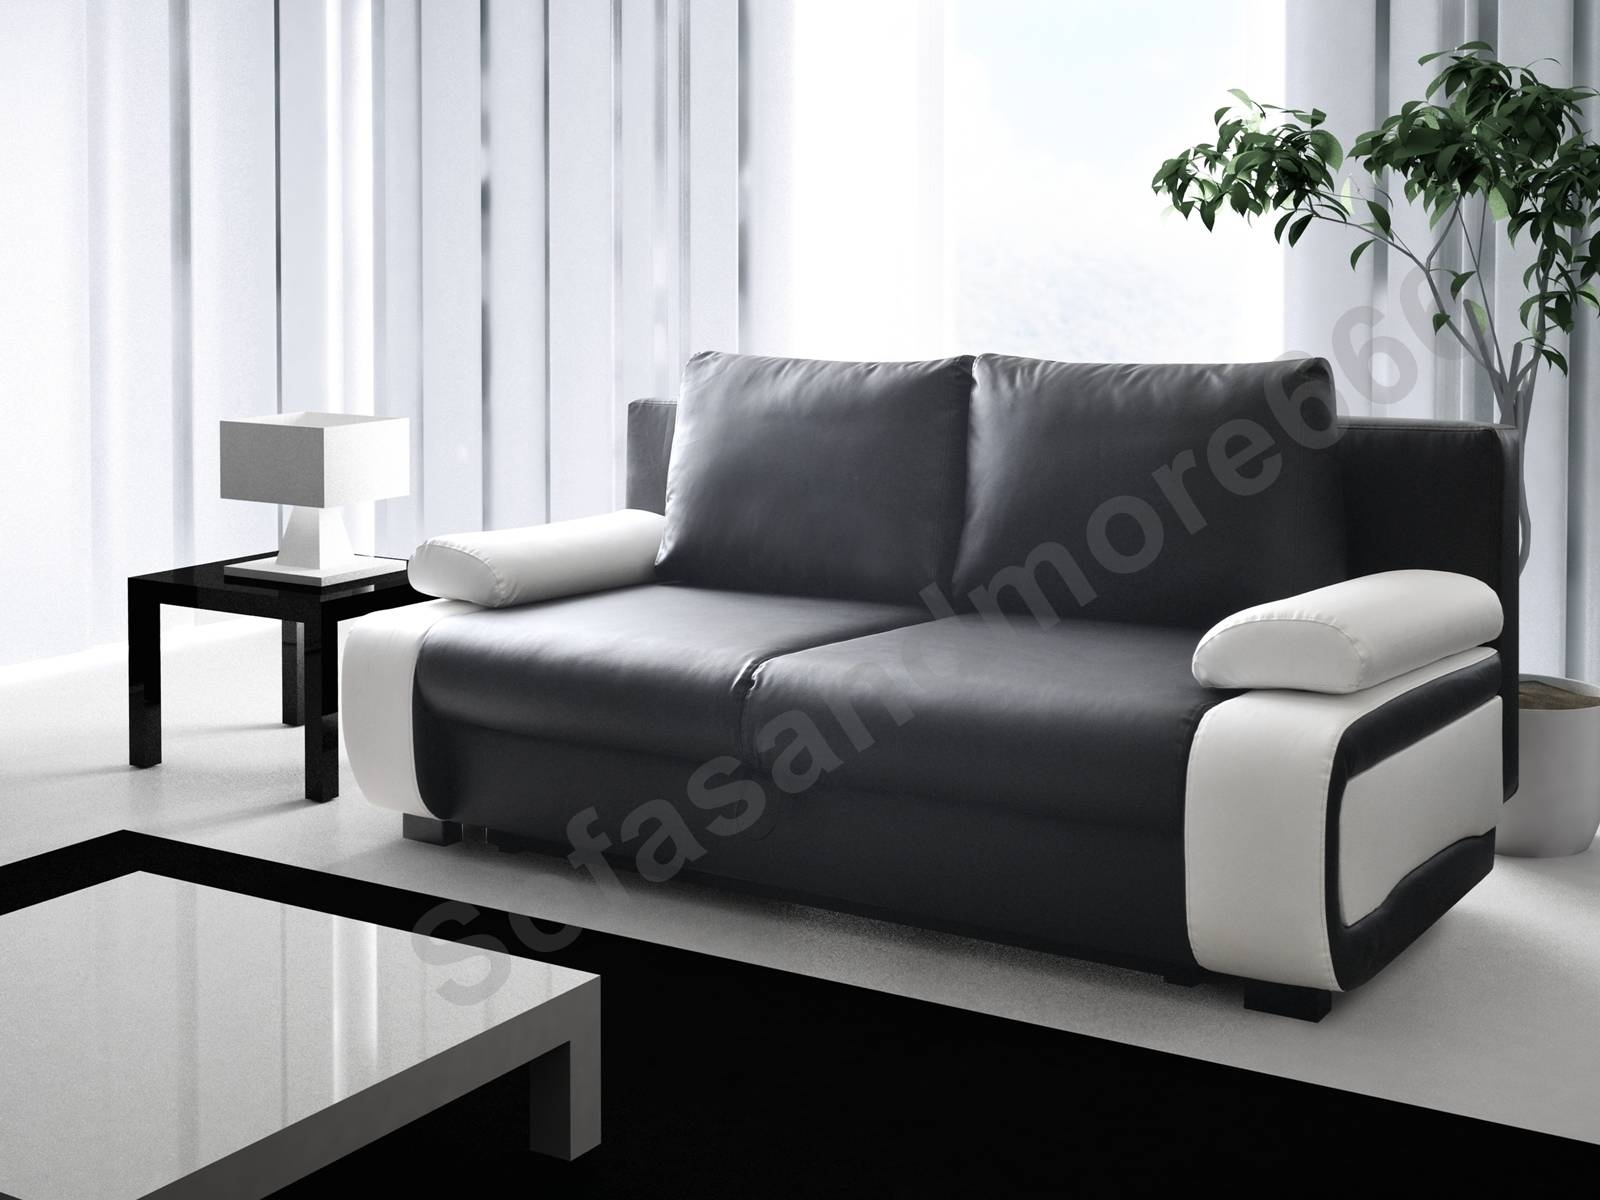 Small Black Leather Sofa Bed | Centerfieldbar inside Black and White Leather Sofas (Image 13 of 15)